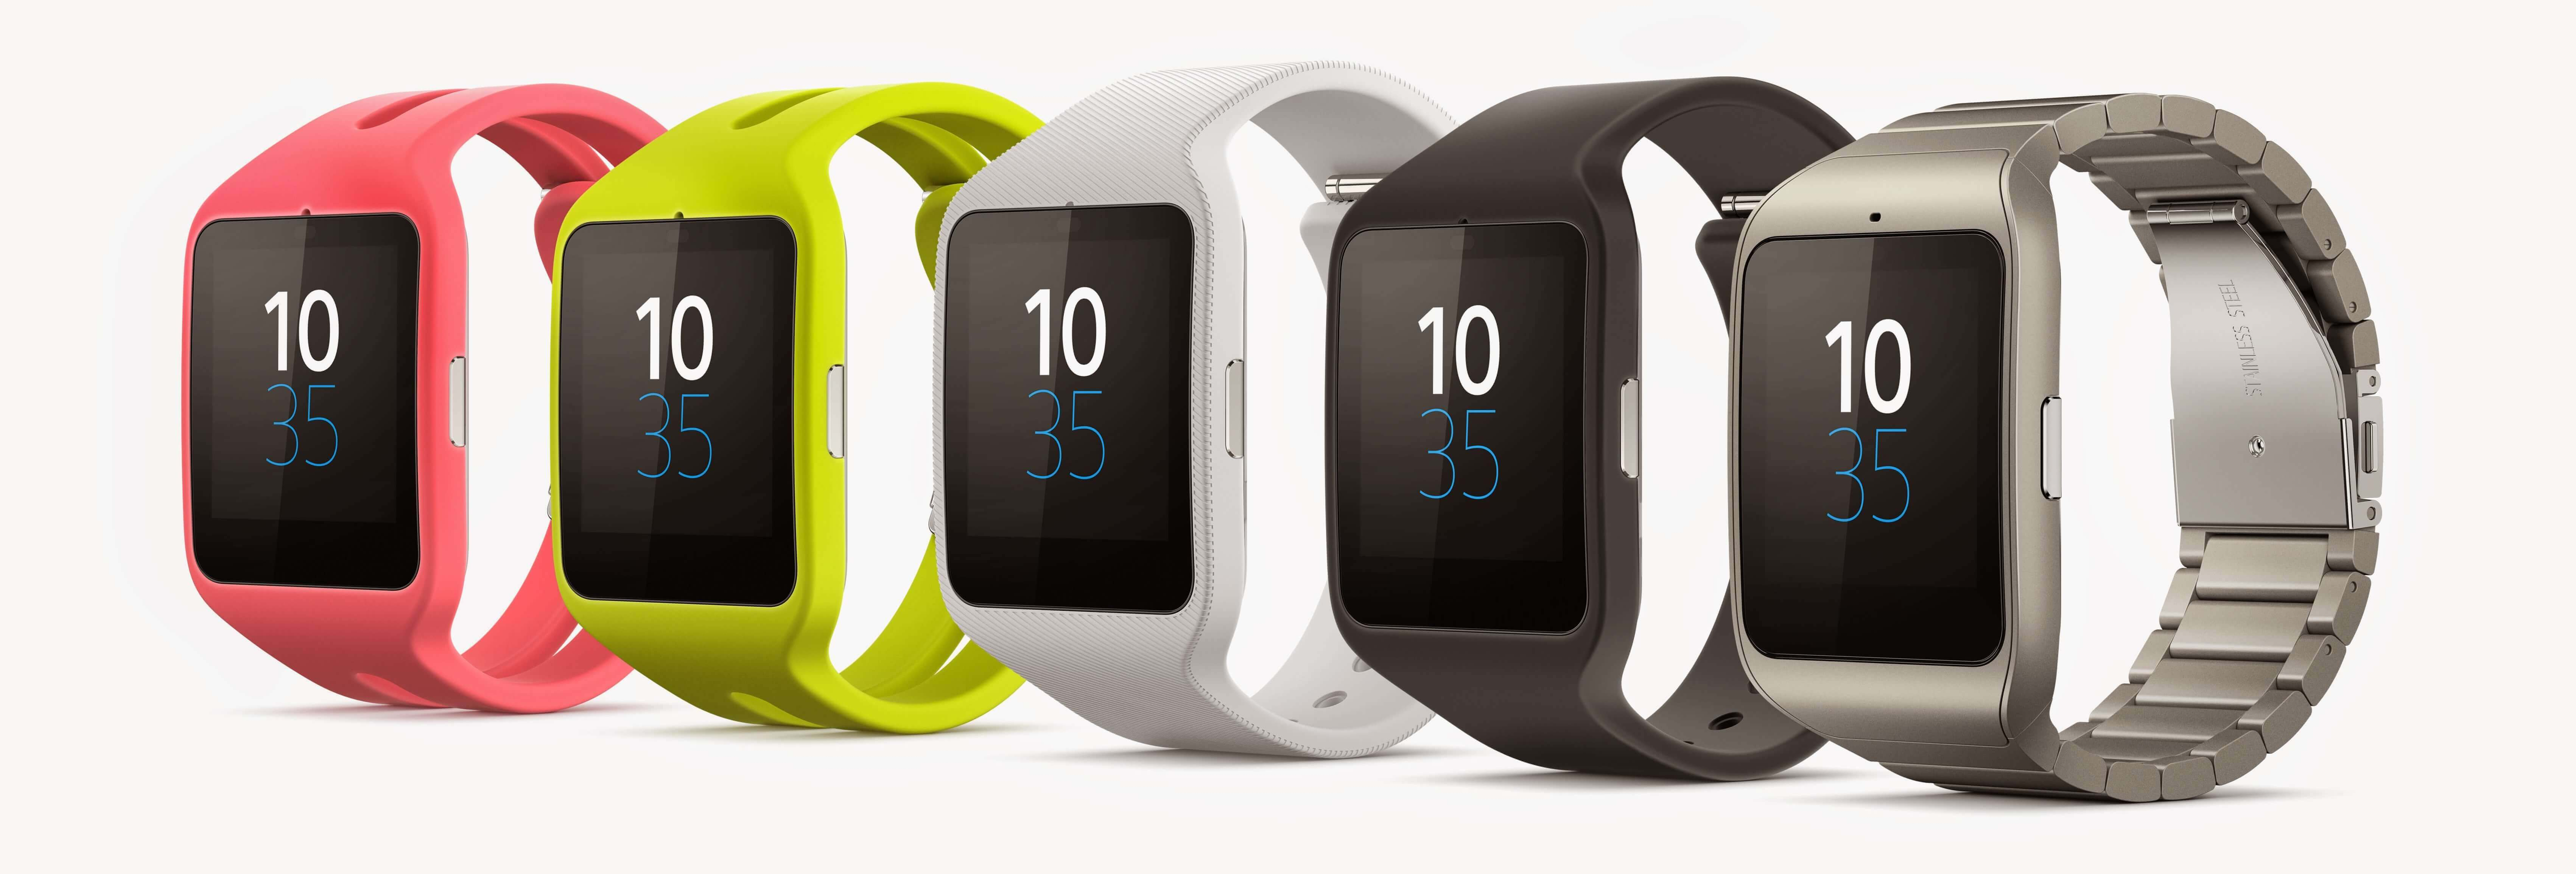 smartwatch wearables news von der ces 2015 in las vegas. Black Bedroom Furniture Sets. Home Design Ideas